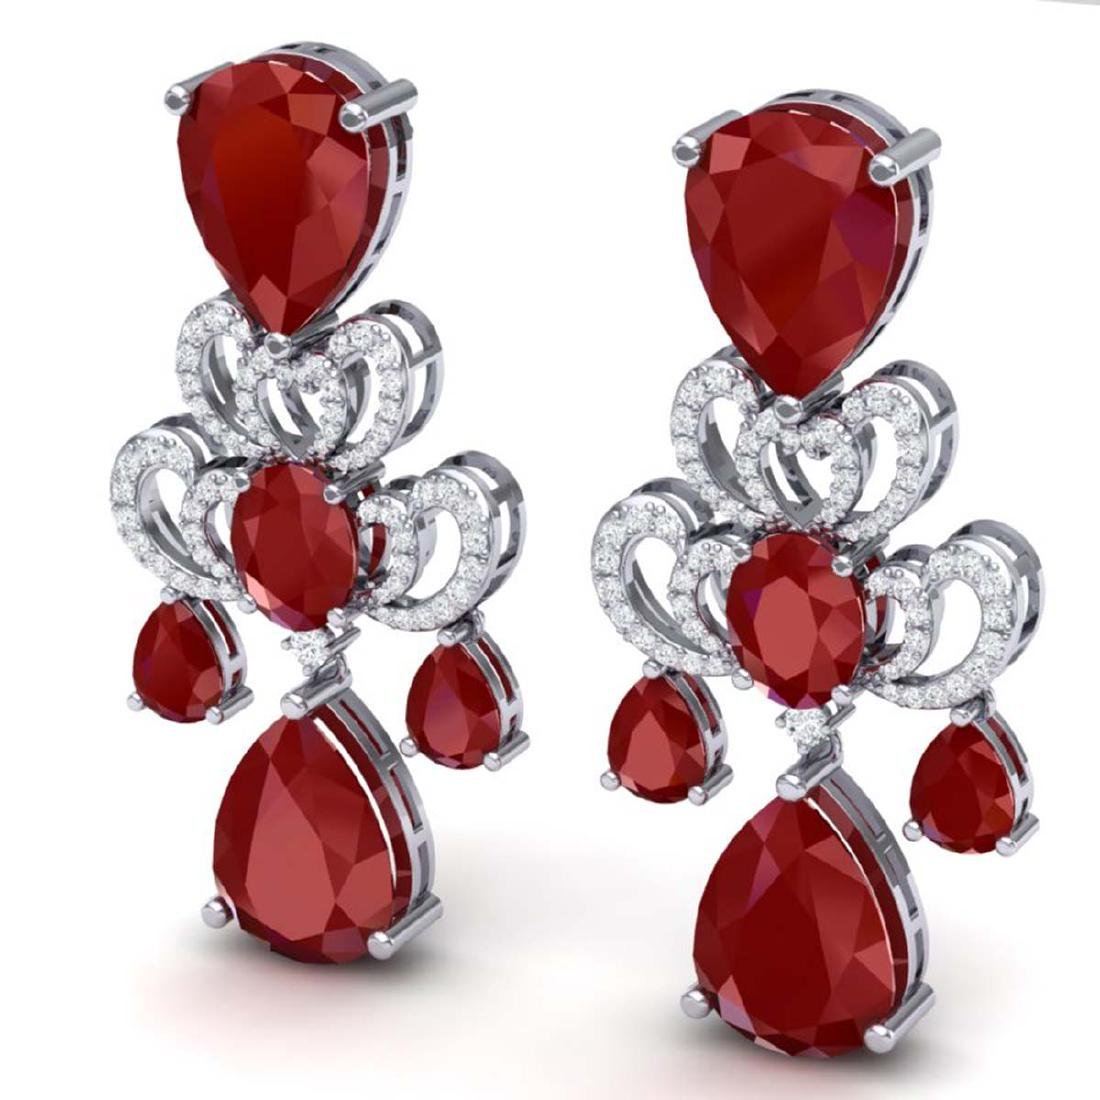 58.73 CTW Royalty Designer Ruby & VS Diamond Earrings - 2